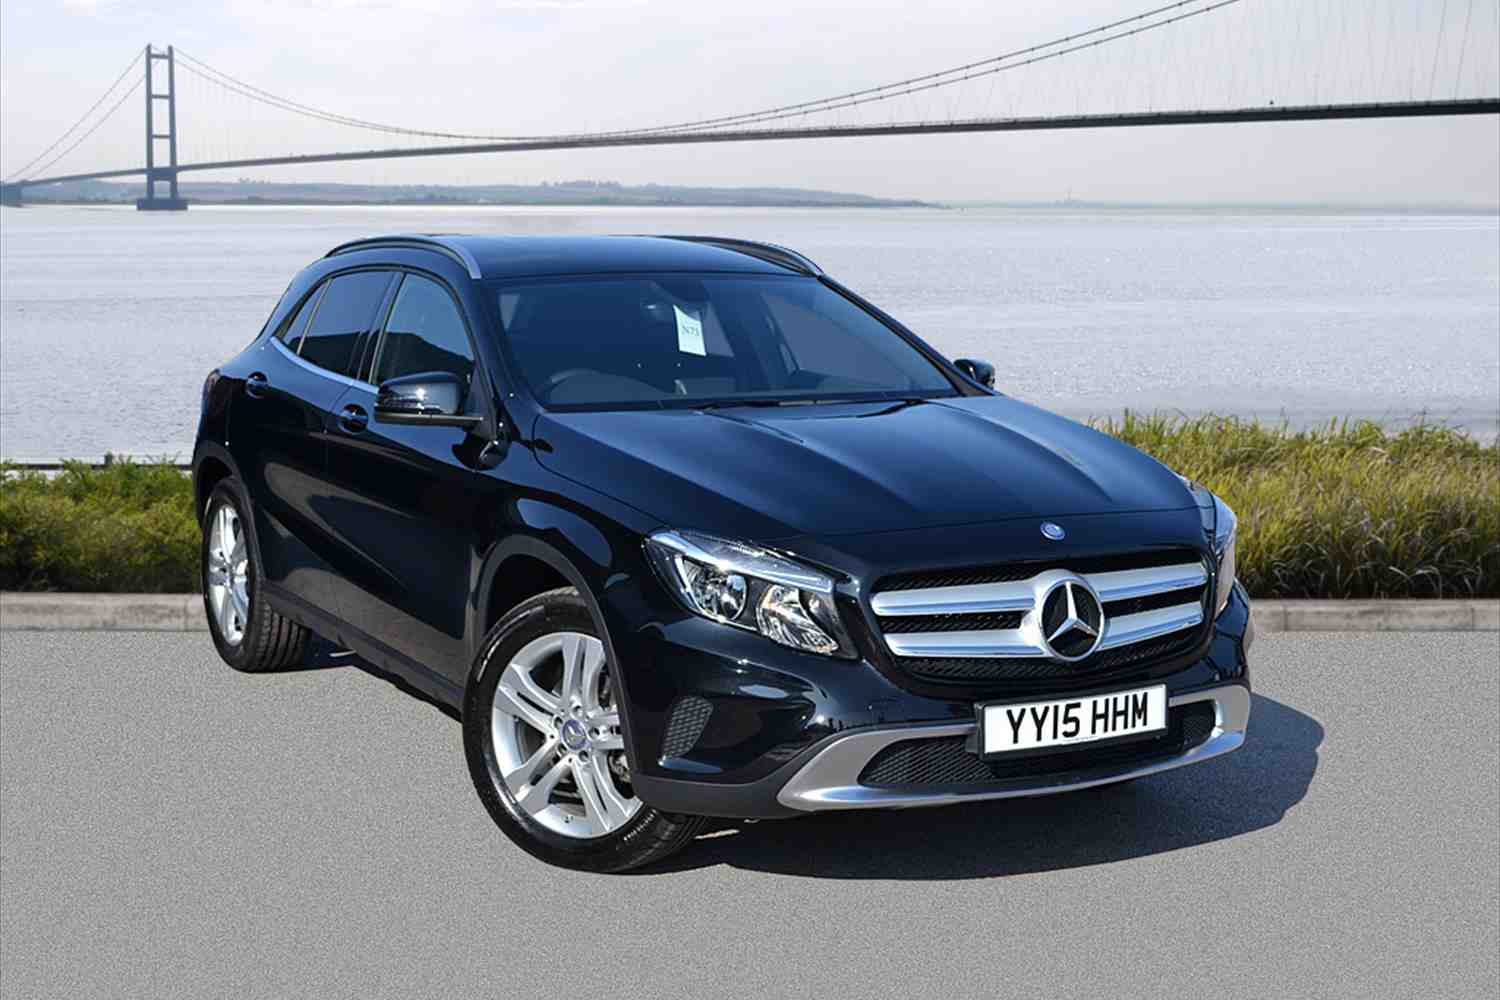 Mercedes-Benz GLA 200 CDI Sport (Diesel) Car Review, Specification, Mileage and Price